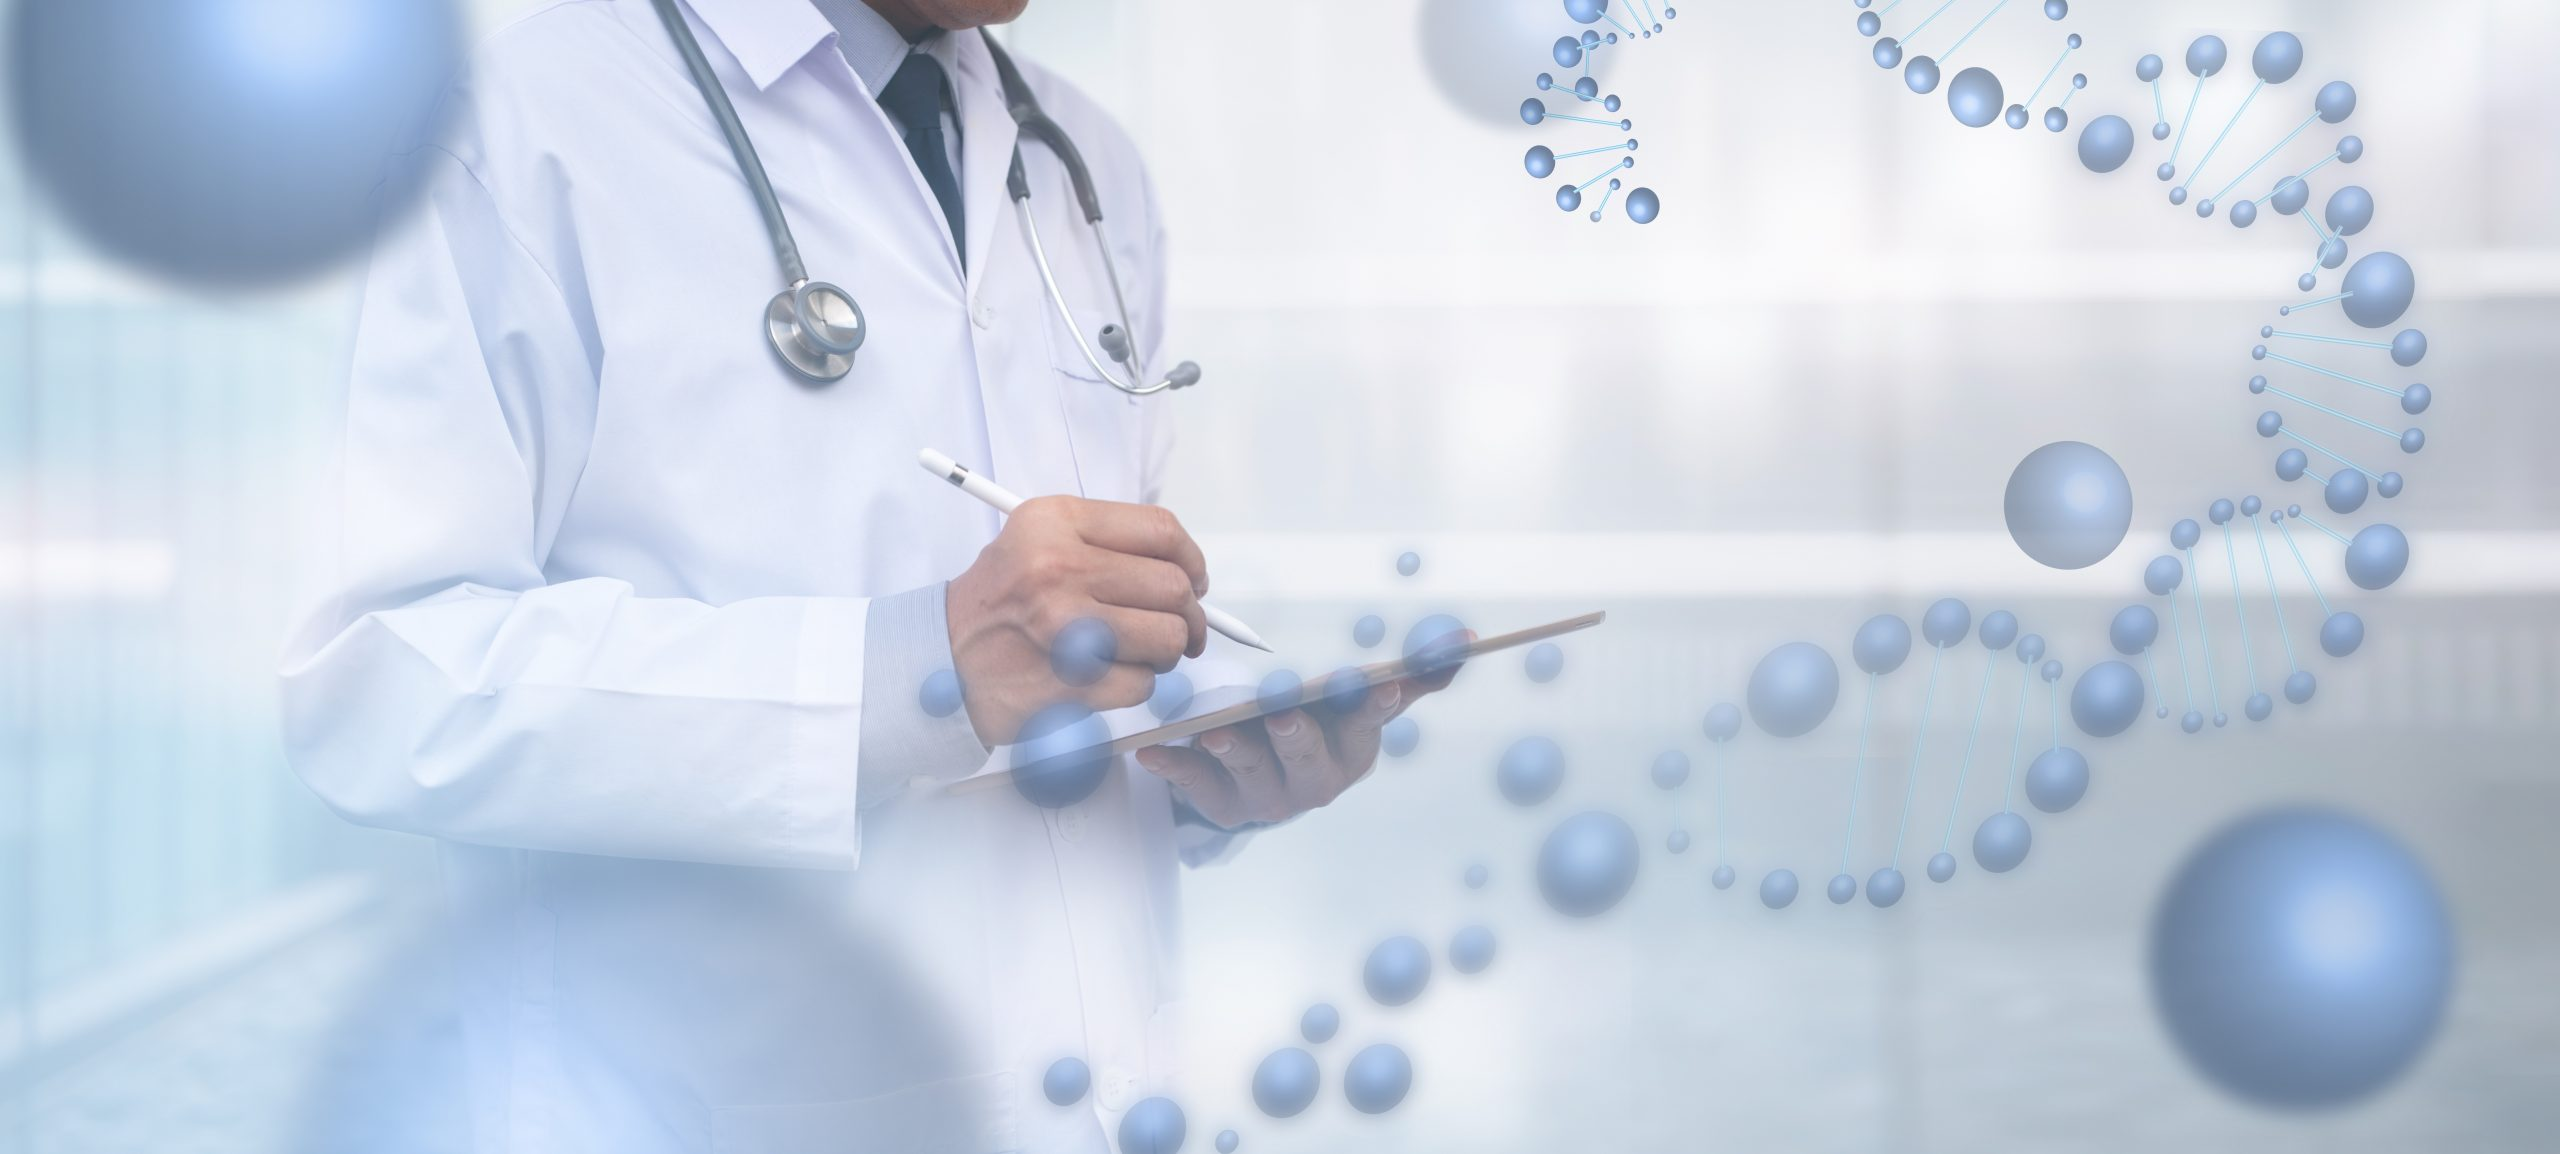 Medicine doctor hand touching on digital tablet computer interface, medical network connection with modern virtual screen, medical research and technology network concept